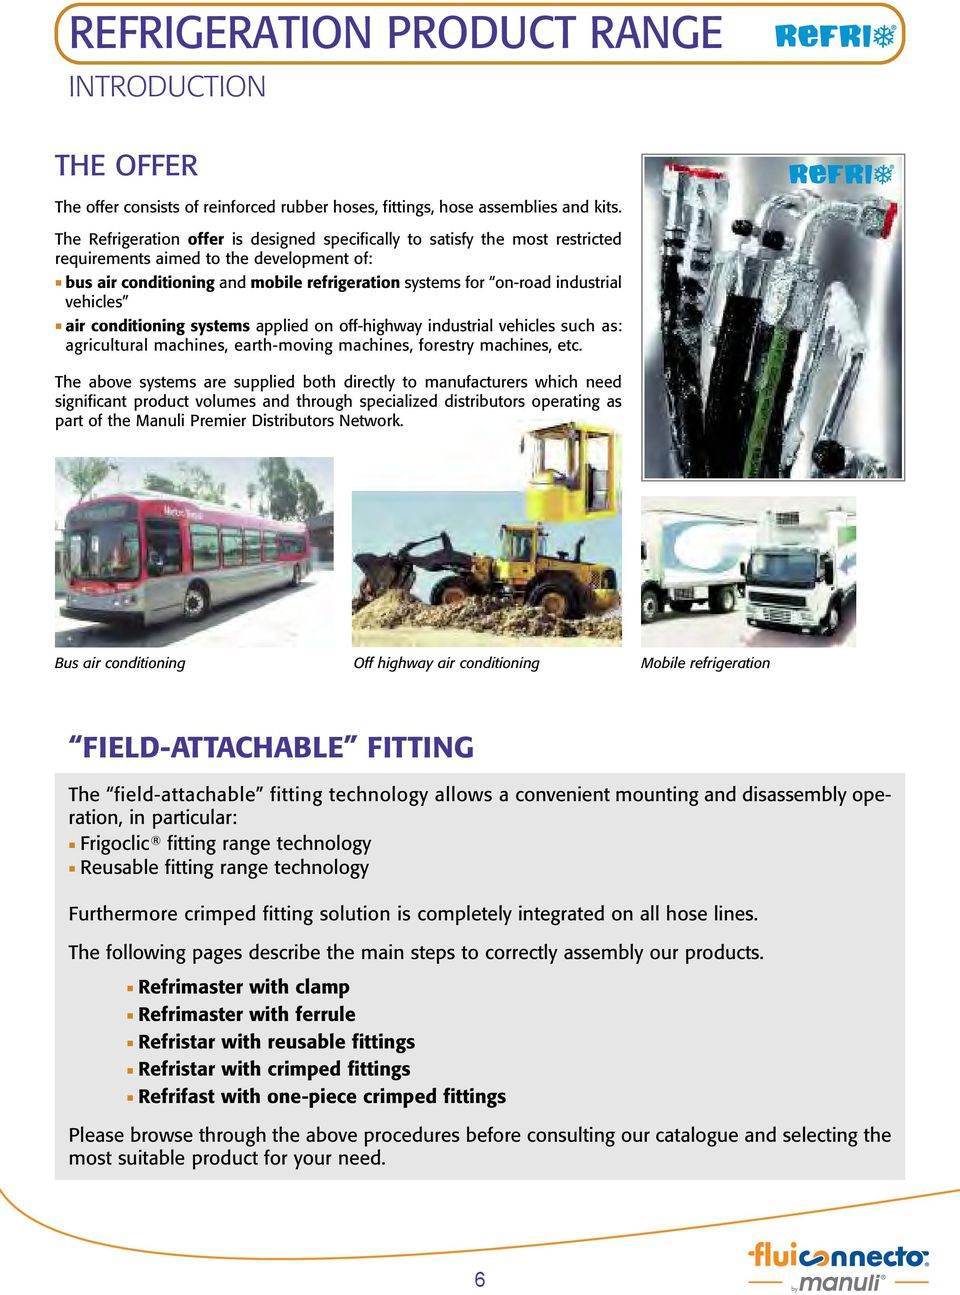 vehicles air conditioning systems applied on off-highway industrial vehicles such as: agricultural machines, earth-moving machines, forestry machines, etc.